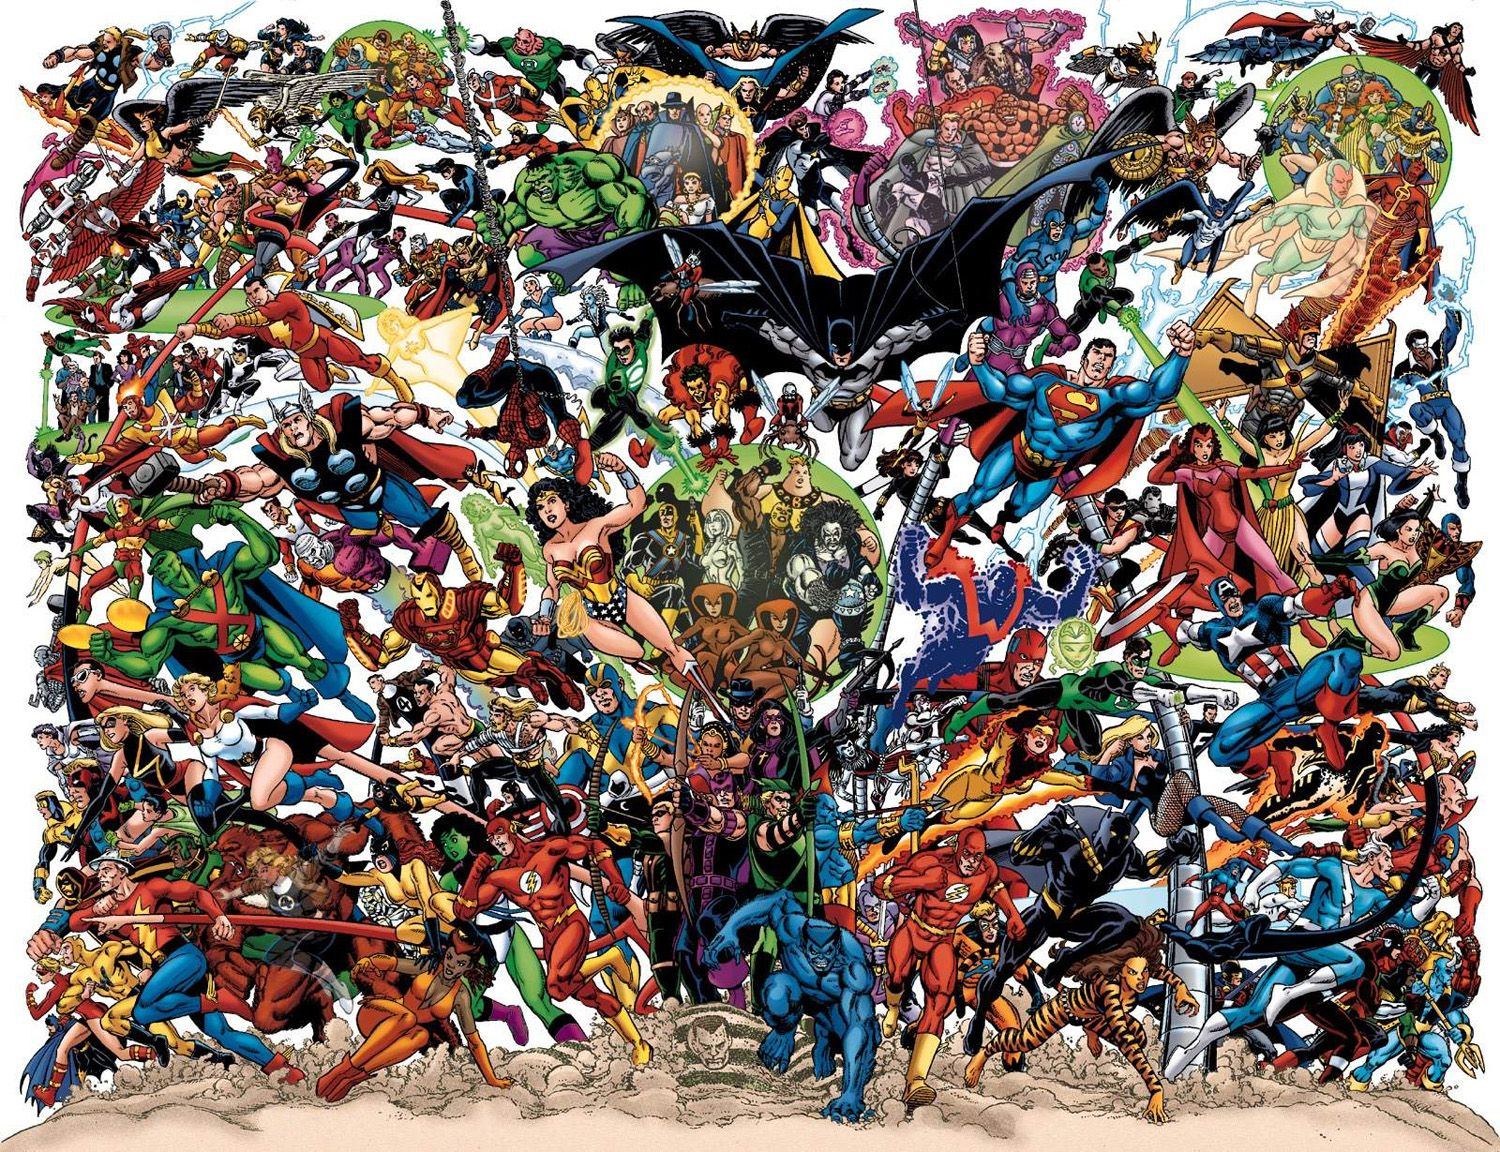 All the #superheroes you can think of in one place